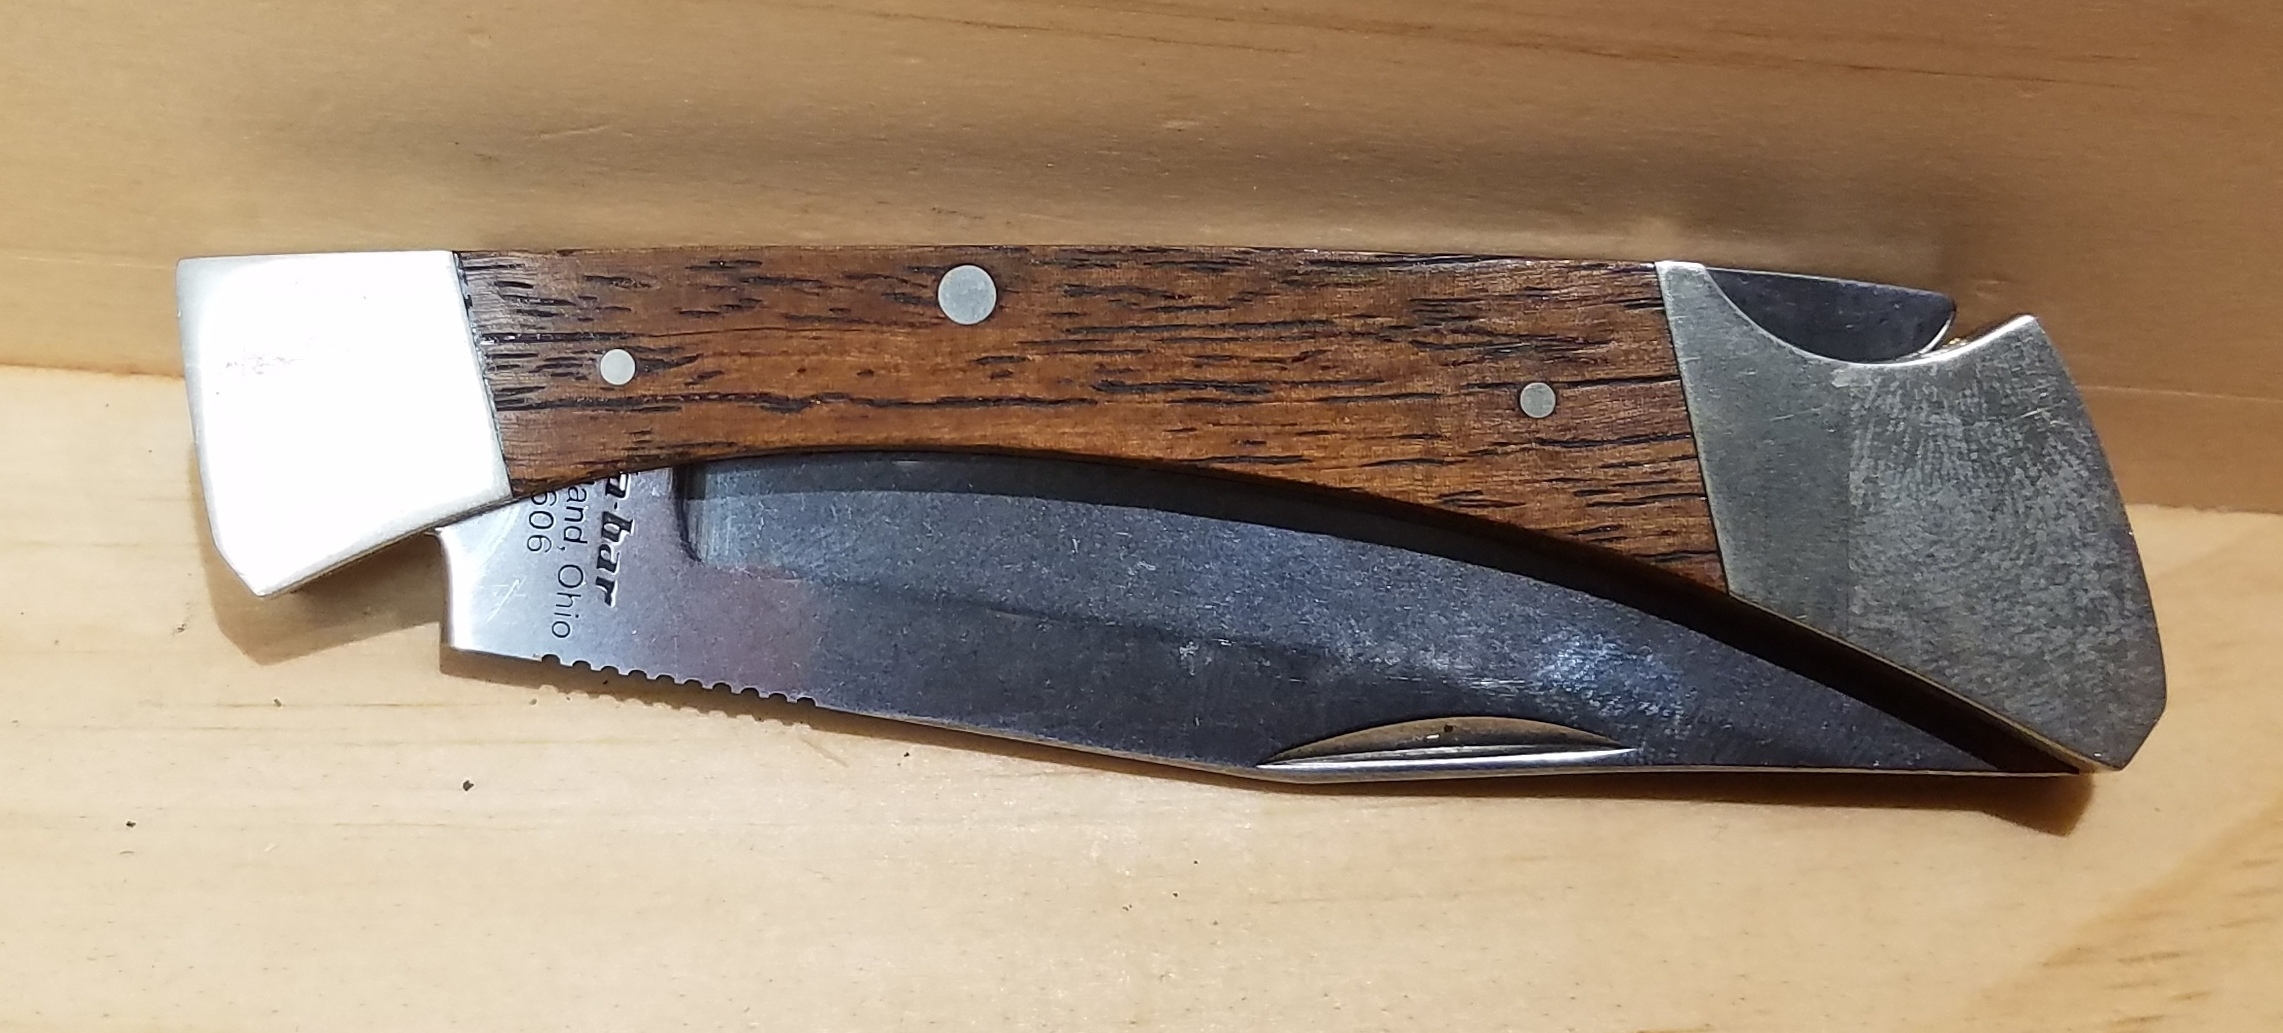 KABAR  1606  KNIFE HUNTING SUPPLIES